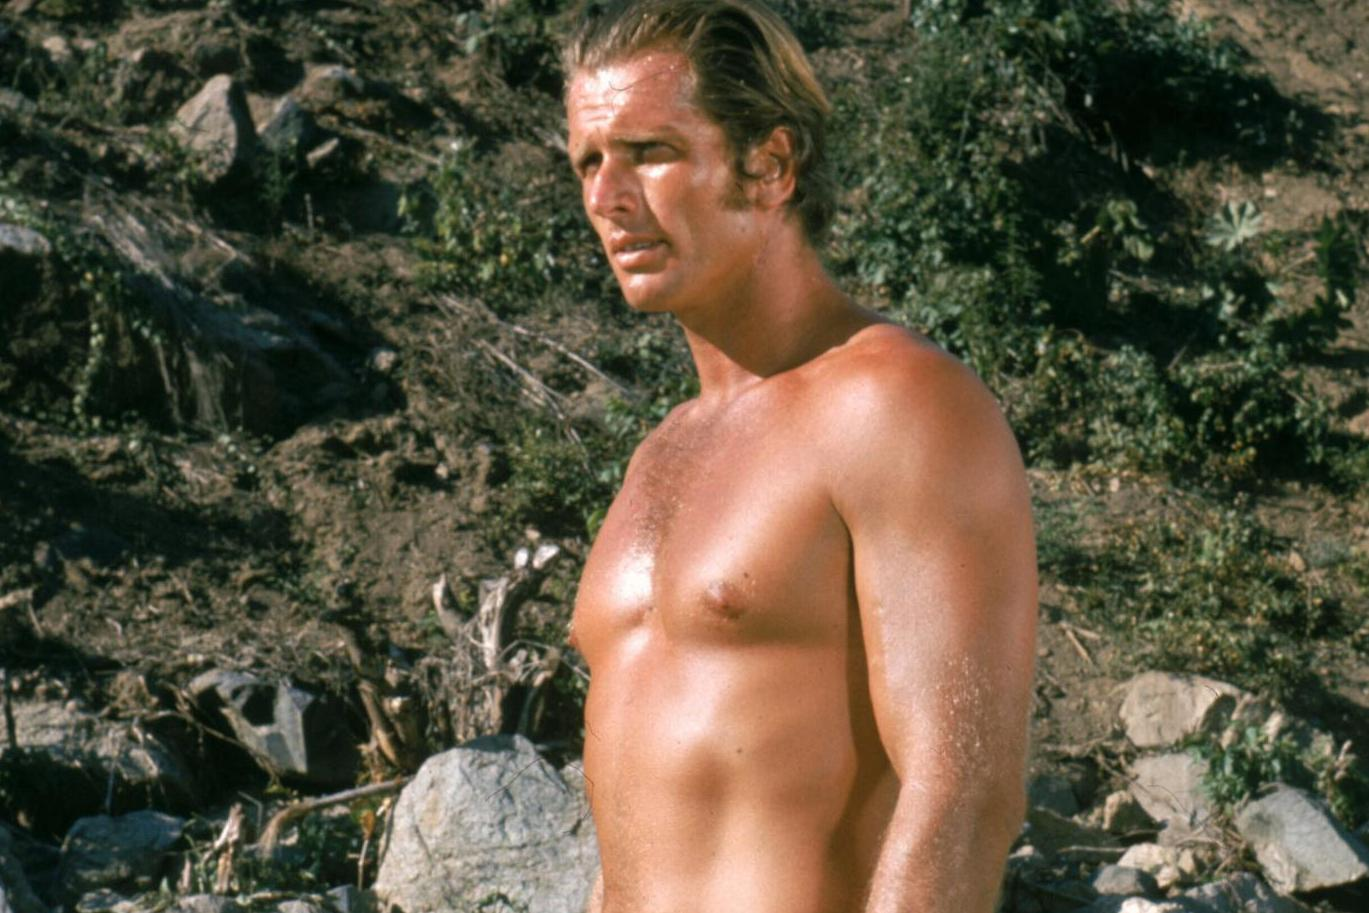 Woman found dead at home of Tarzan actor Ron Ely